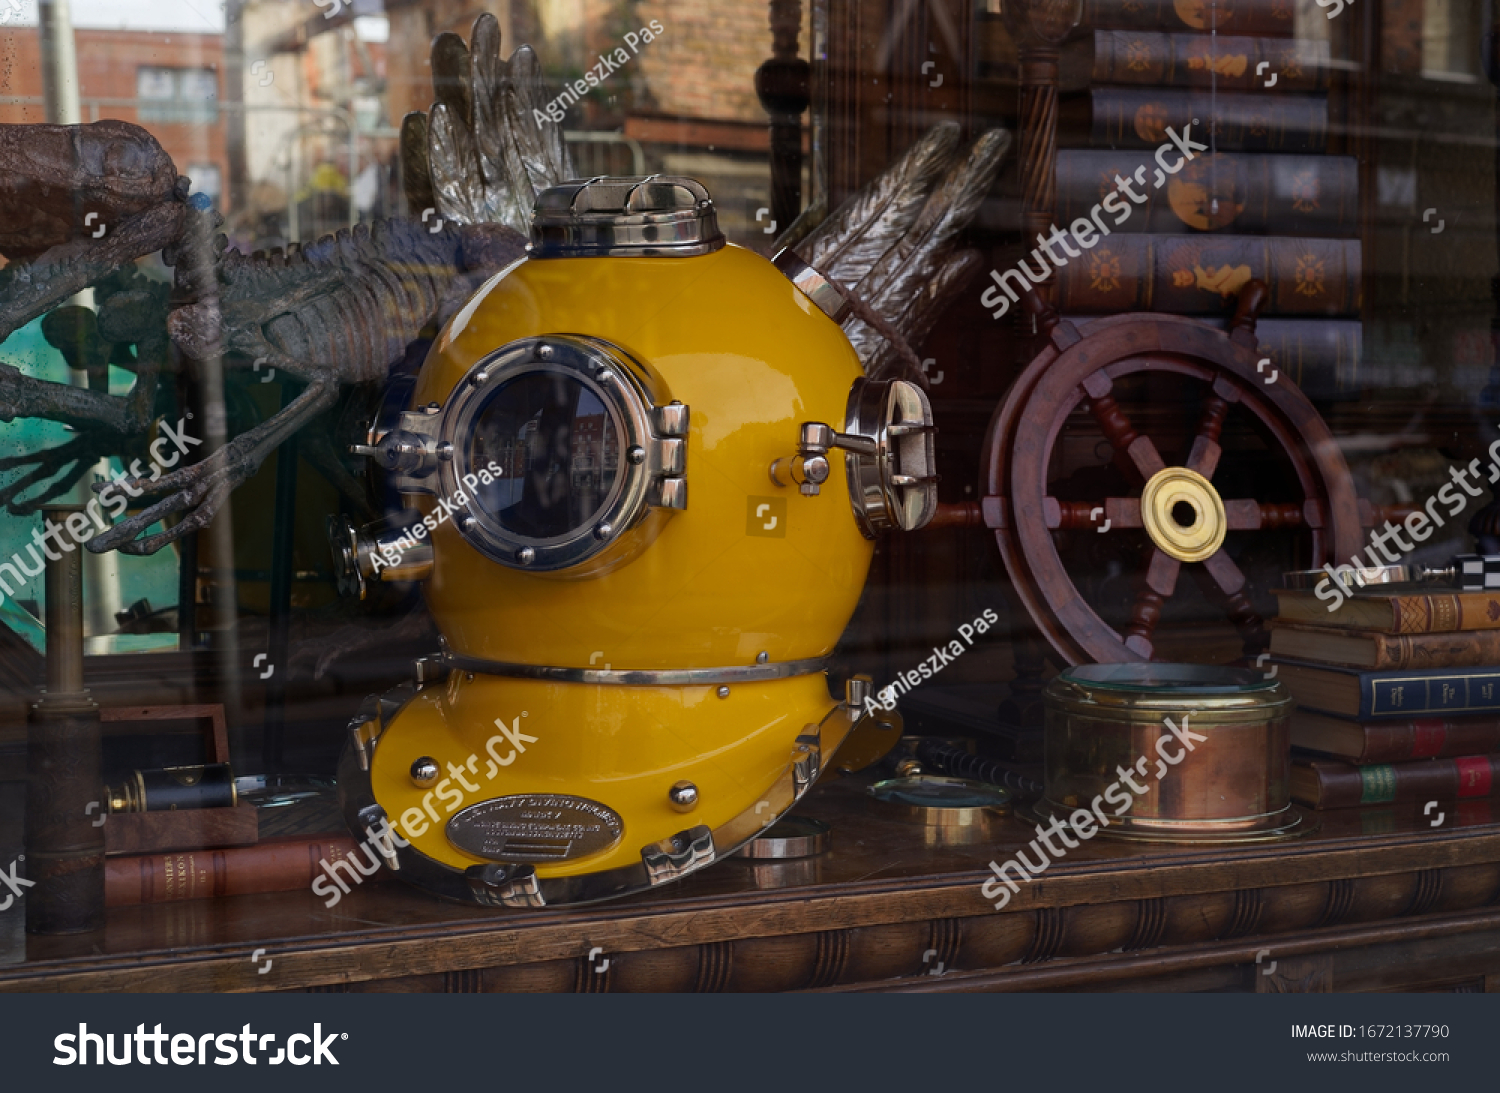 DUBLIN, IRELAND - MARCH 5, 2020: Antique shop window with old yellow shiny diving helmet and other restored items. Vintage collection.